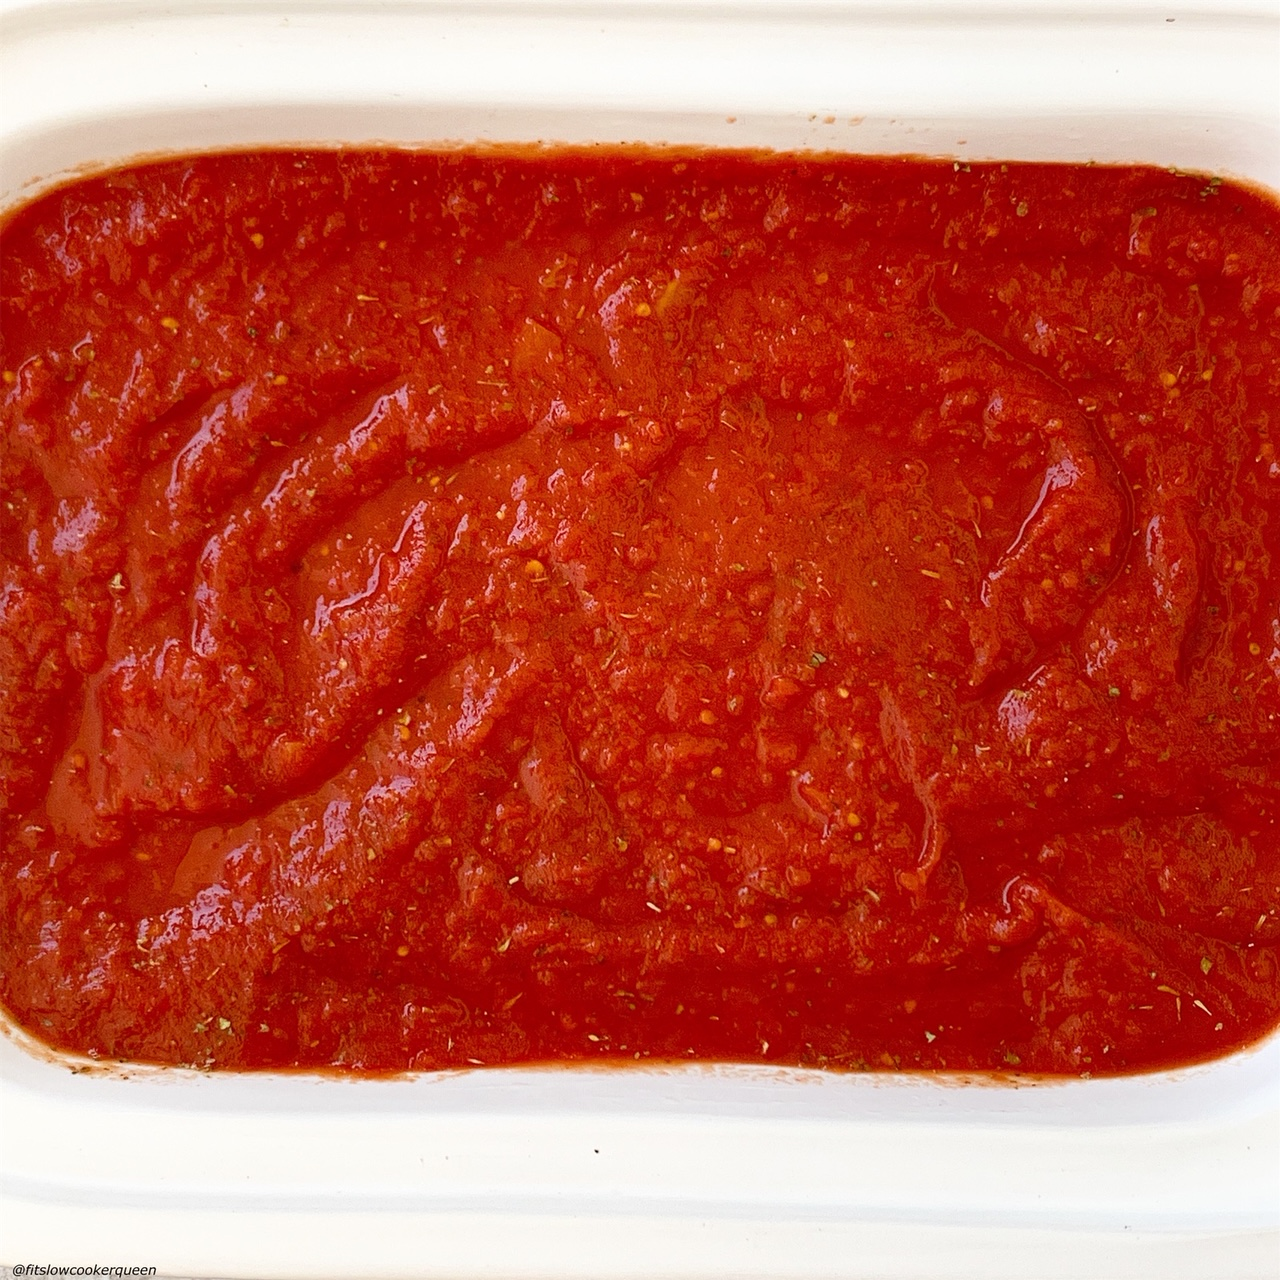 sauce on top of the stuffed manicotti in the slow cooker for for slow cooker or instant pot stuffed manicotti